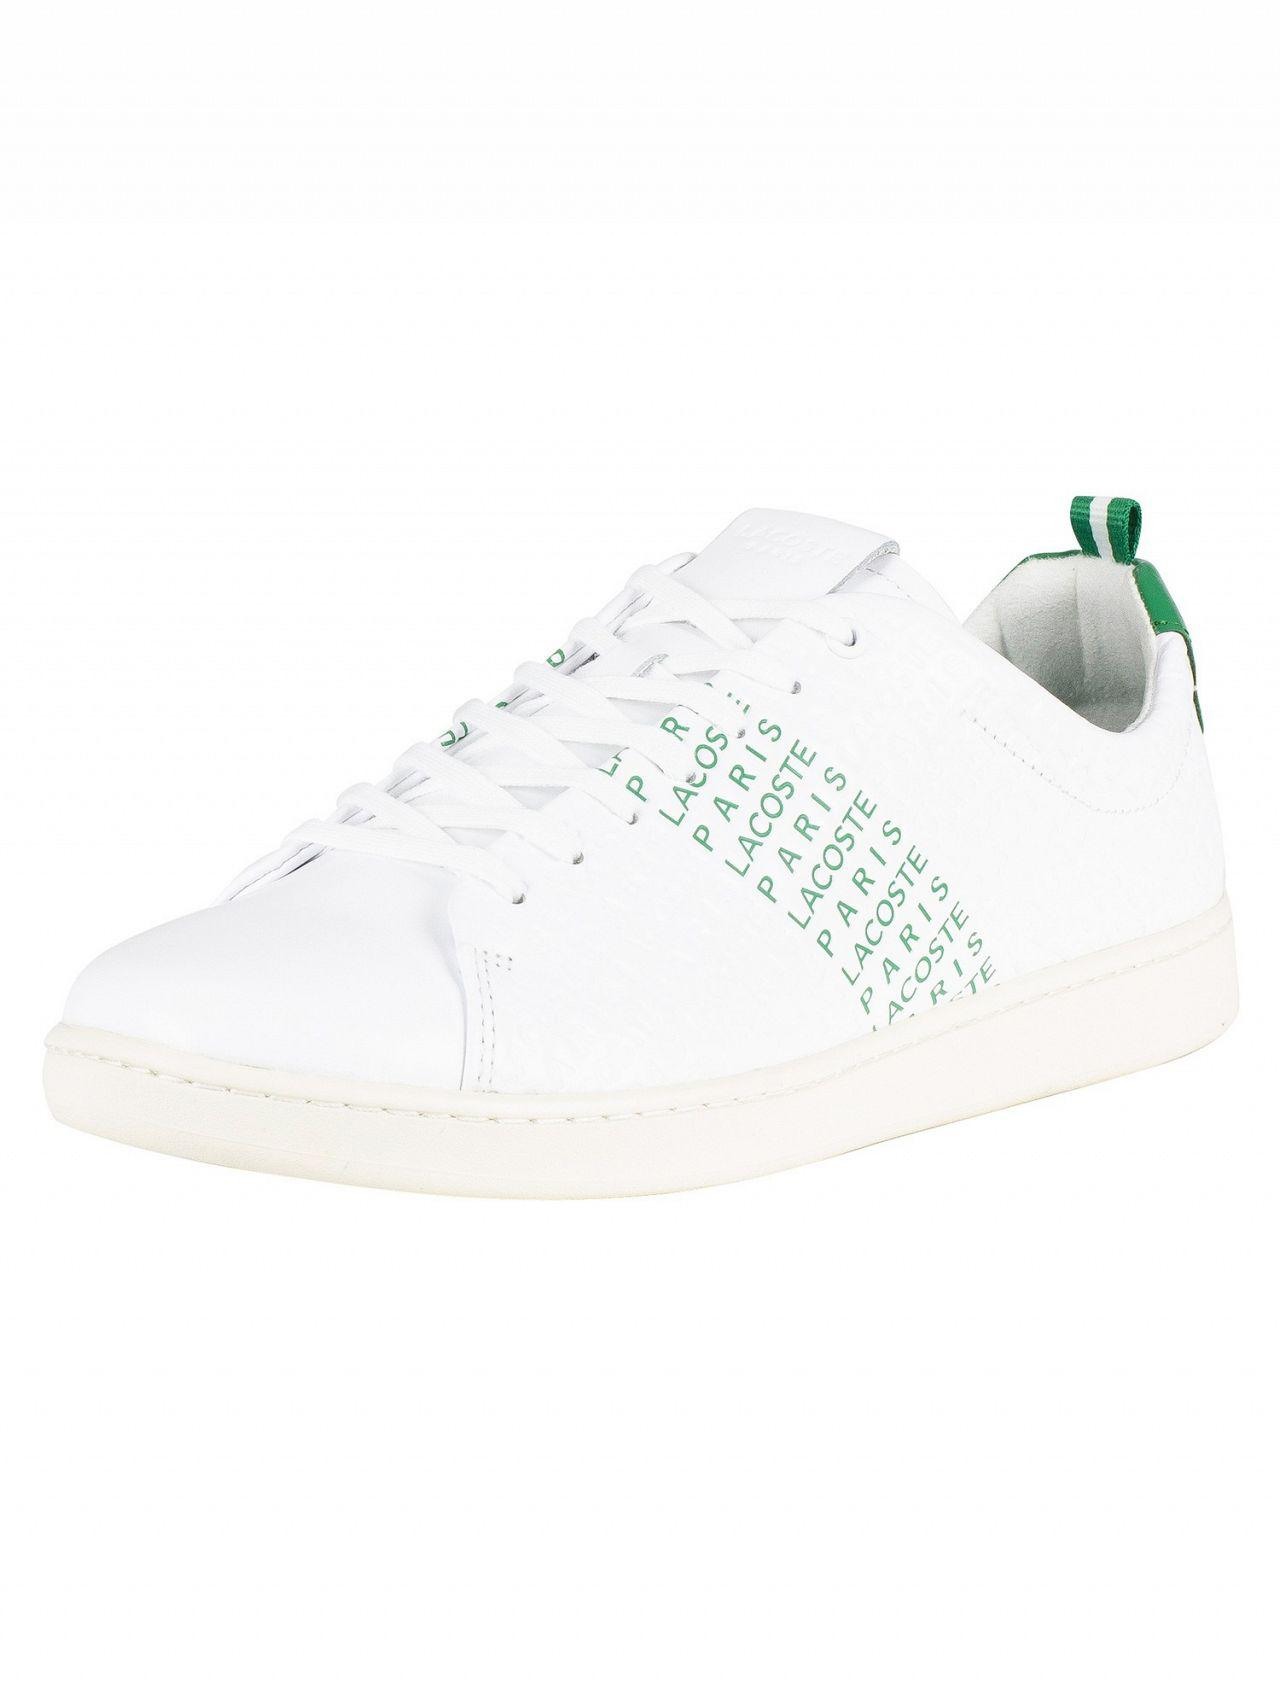 7b209e33a Lyst - Lacoste White green Carnaby Evo 119 9 Leather Trainers in ...